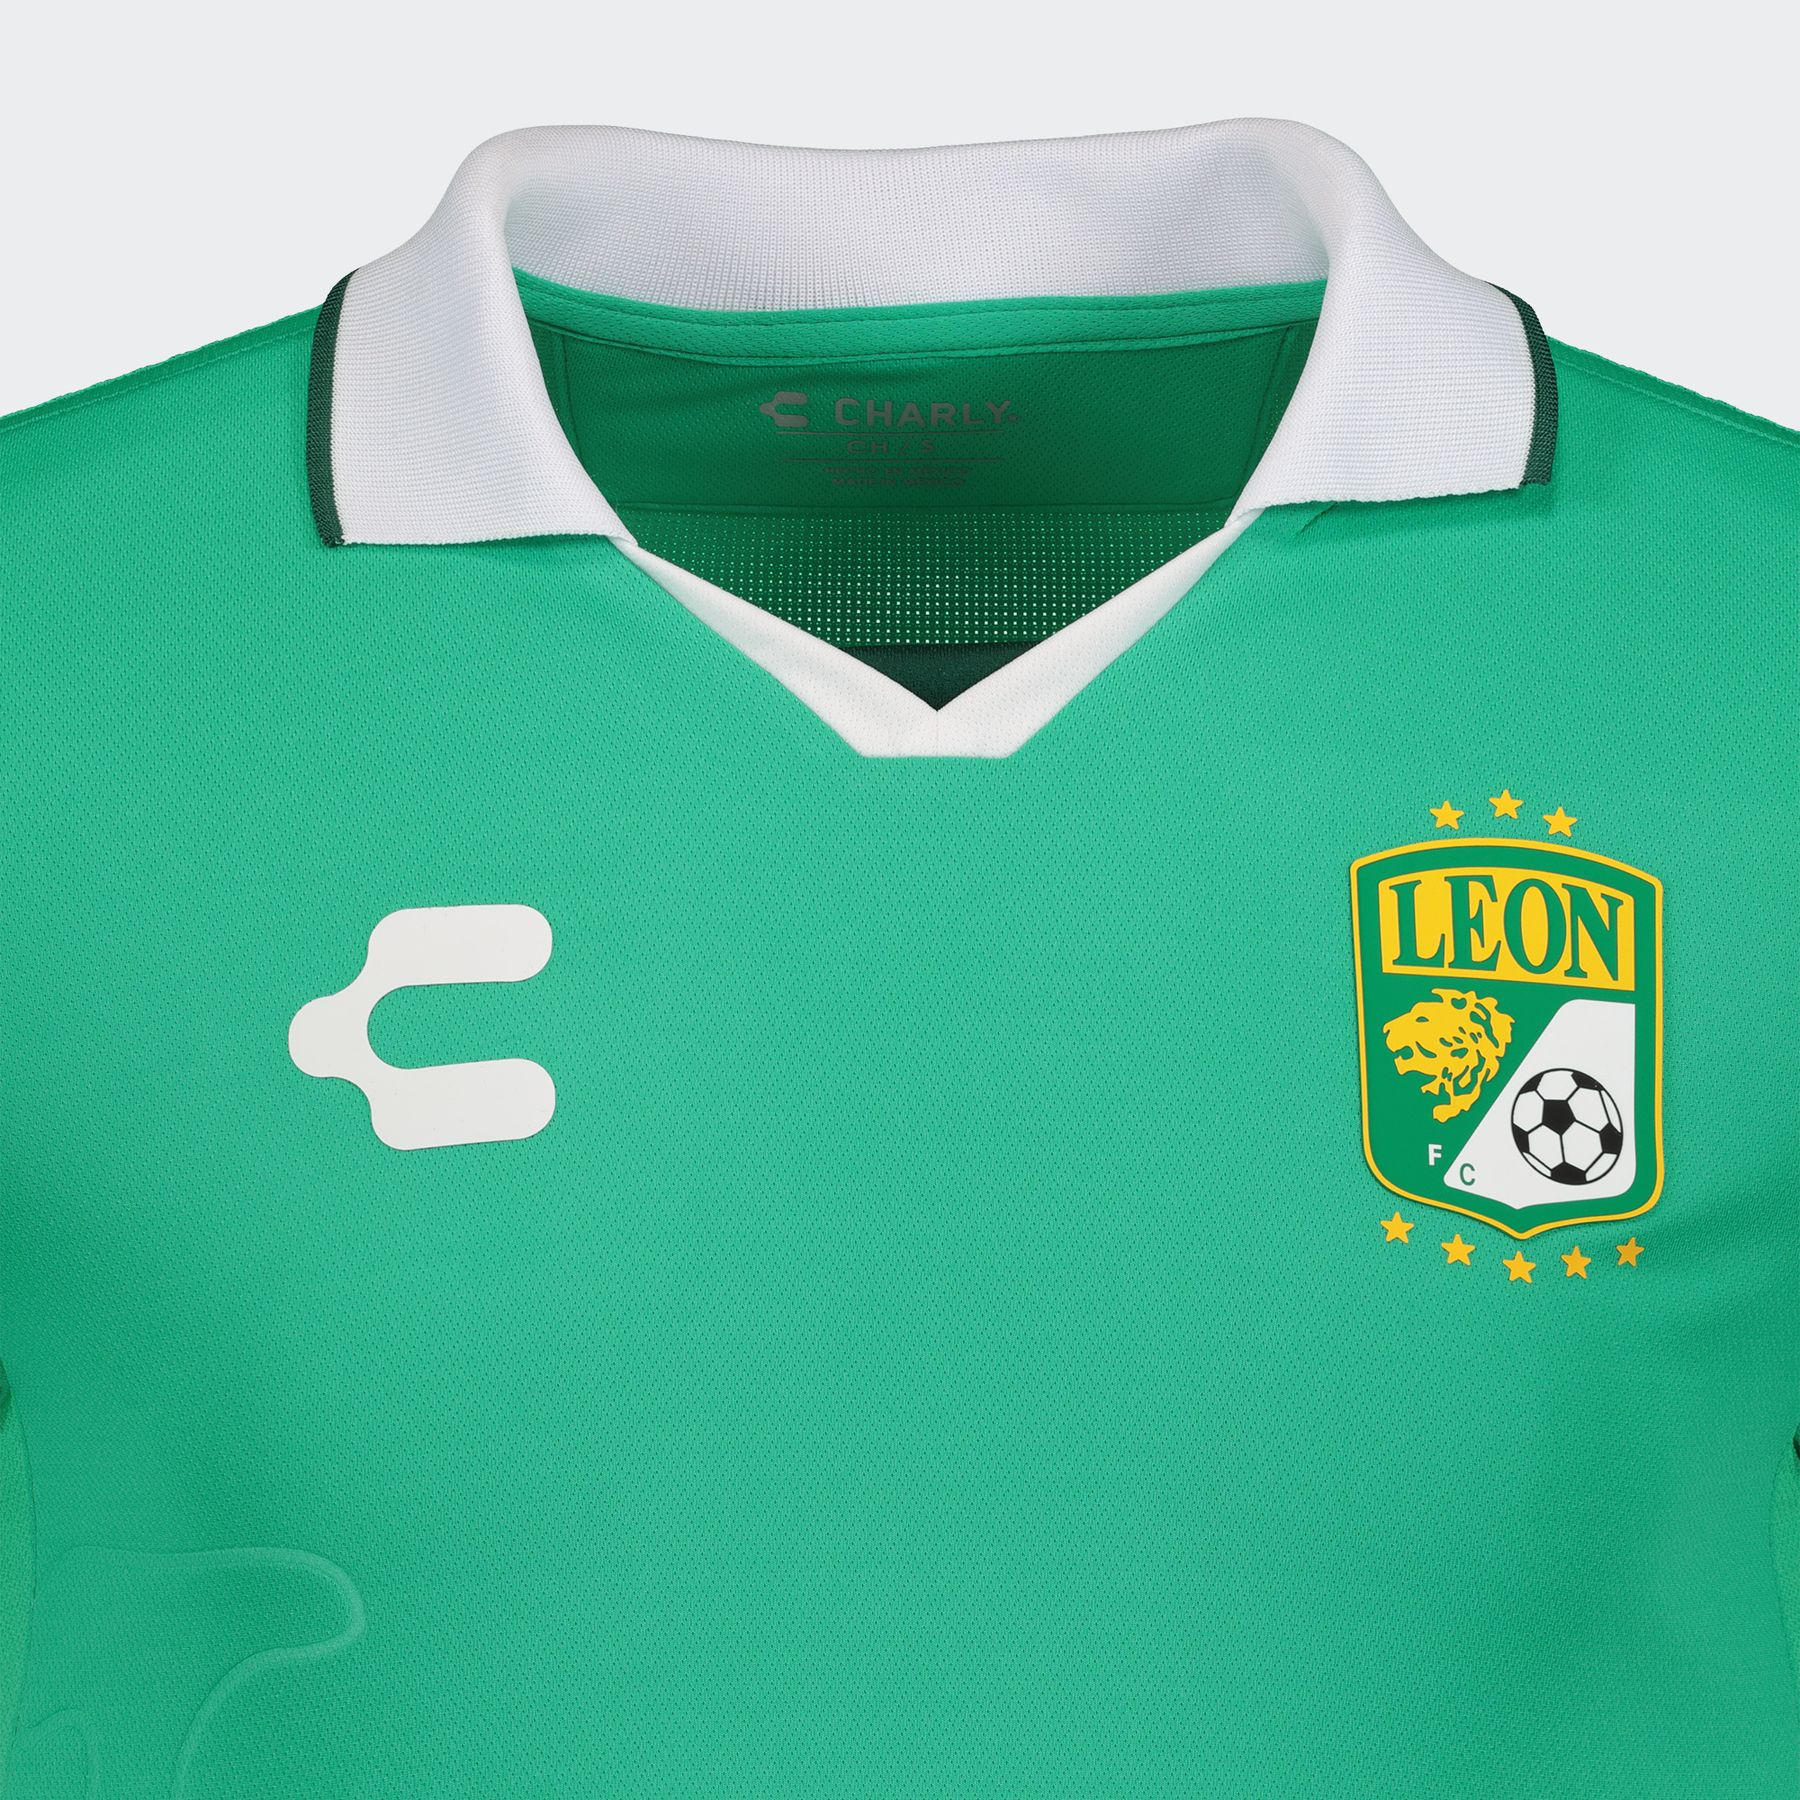 Pirma Leon Home Jersey 19//20 Green Size Small